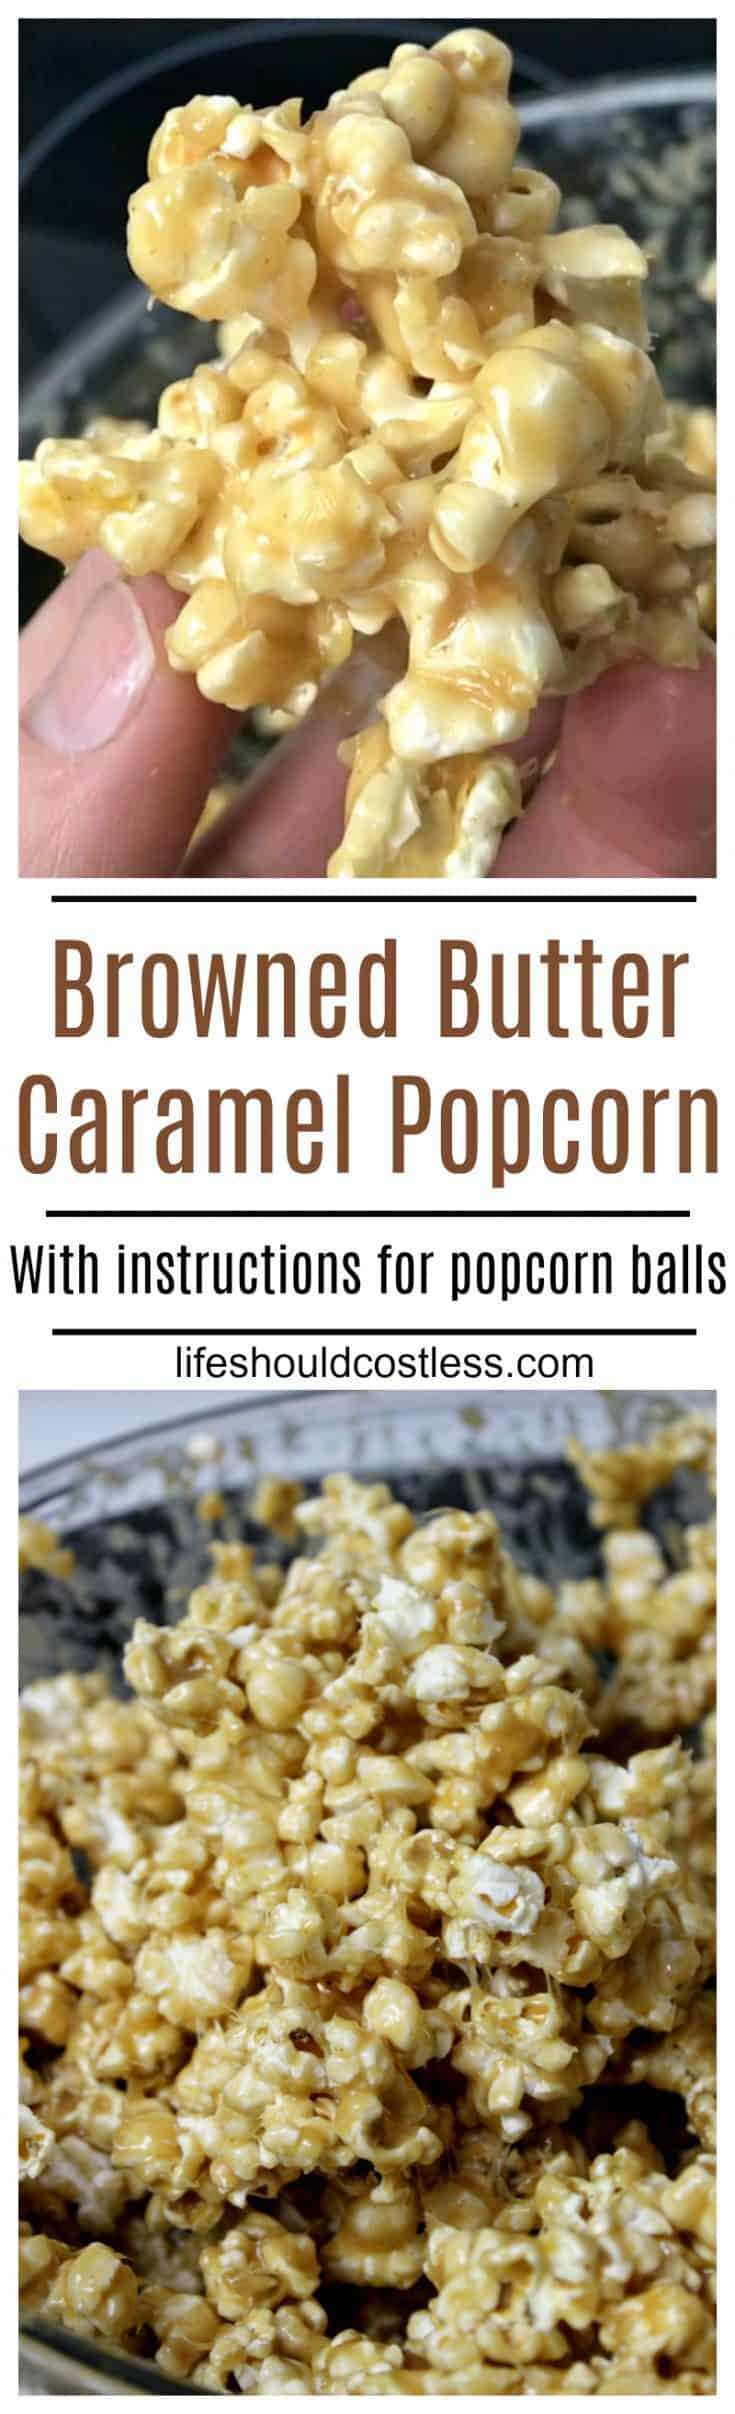 Browned Butter Caramel Popcorn Recipe with instructions on how to make popcorn balls. It's a new take on an old favorite and they are utterly delicious. lifeshouldcostless.com